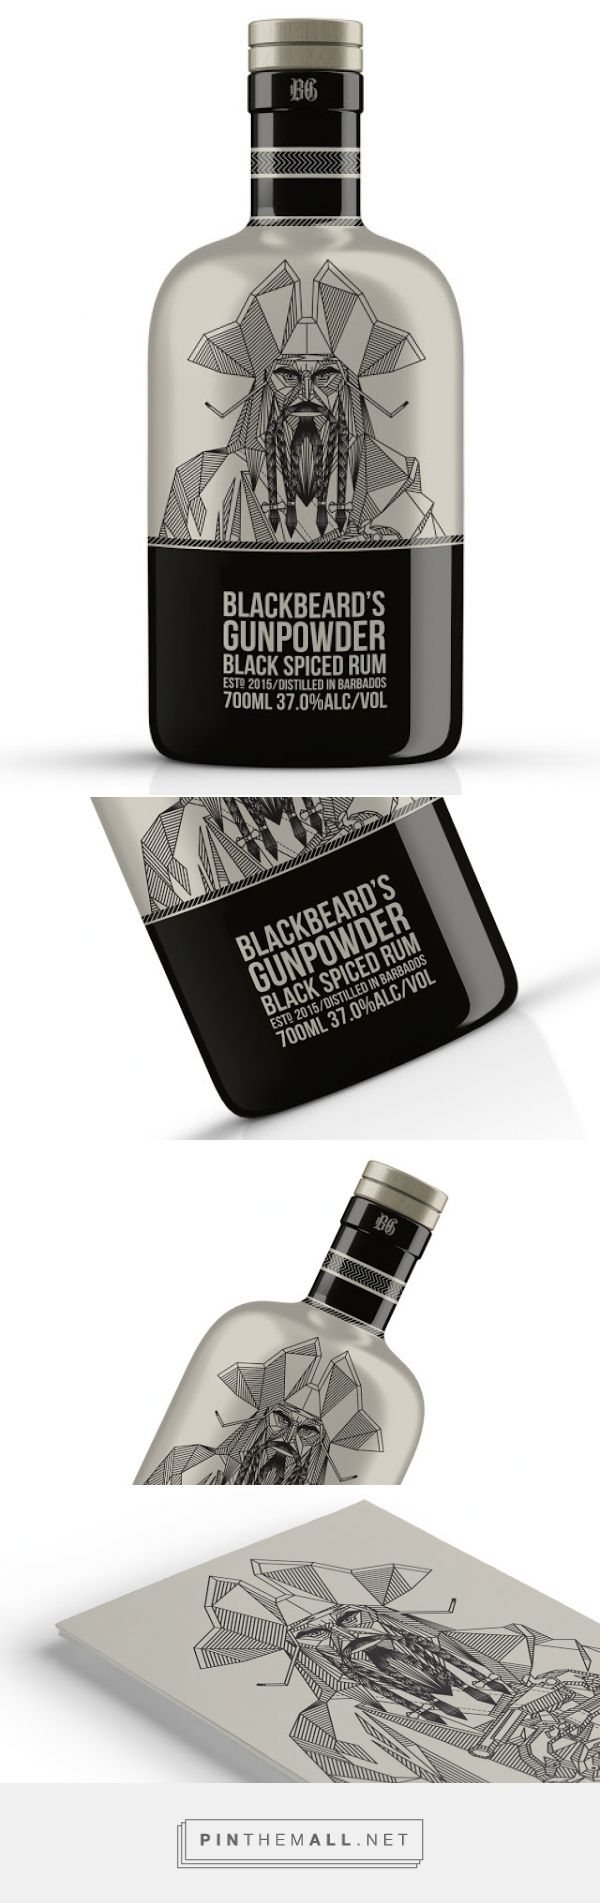 Blackbeard's Gunpowder Rum on Packaging of the World - Creative Package Design Gallery - created via http://pinthemall.net